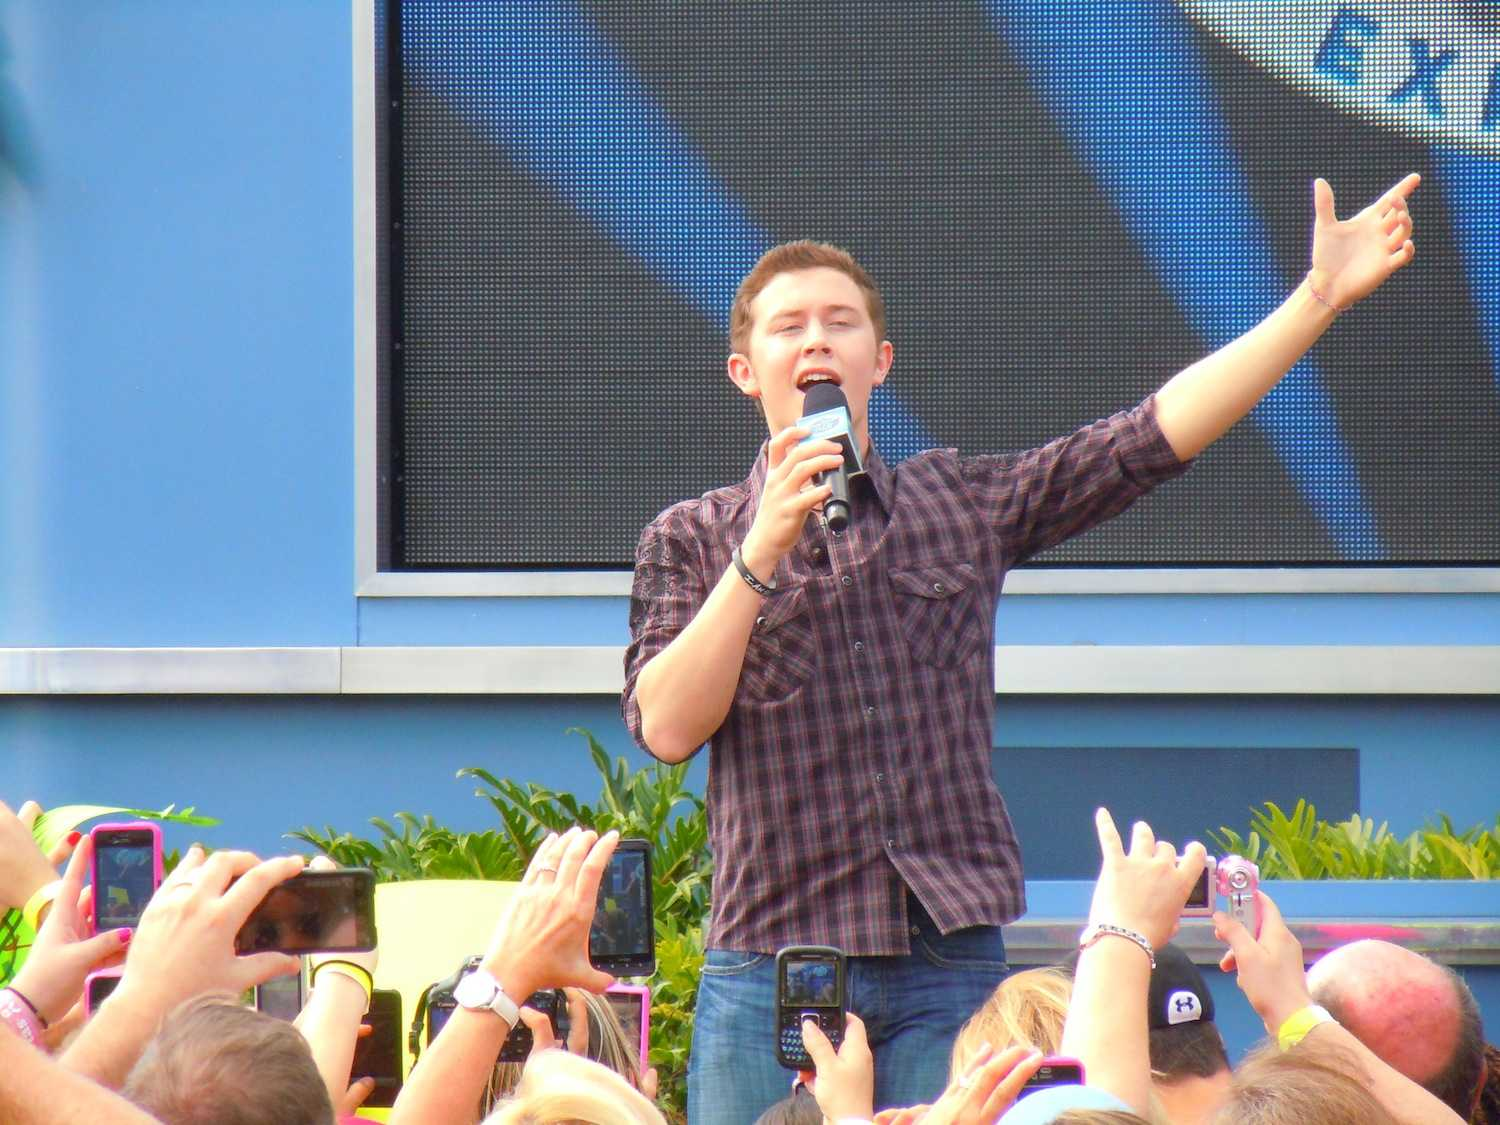 Scotty McCreery at Disney Hollywood Studios. Courtesy of http://www.flickr.com/photos/insidethemagic/5776263073/